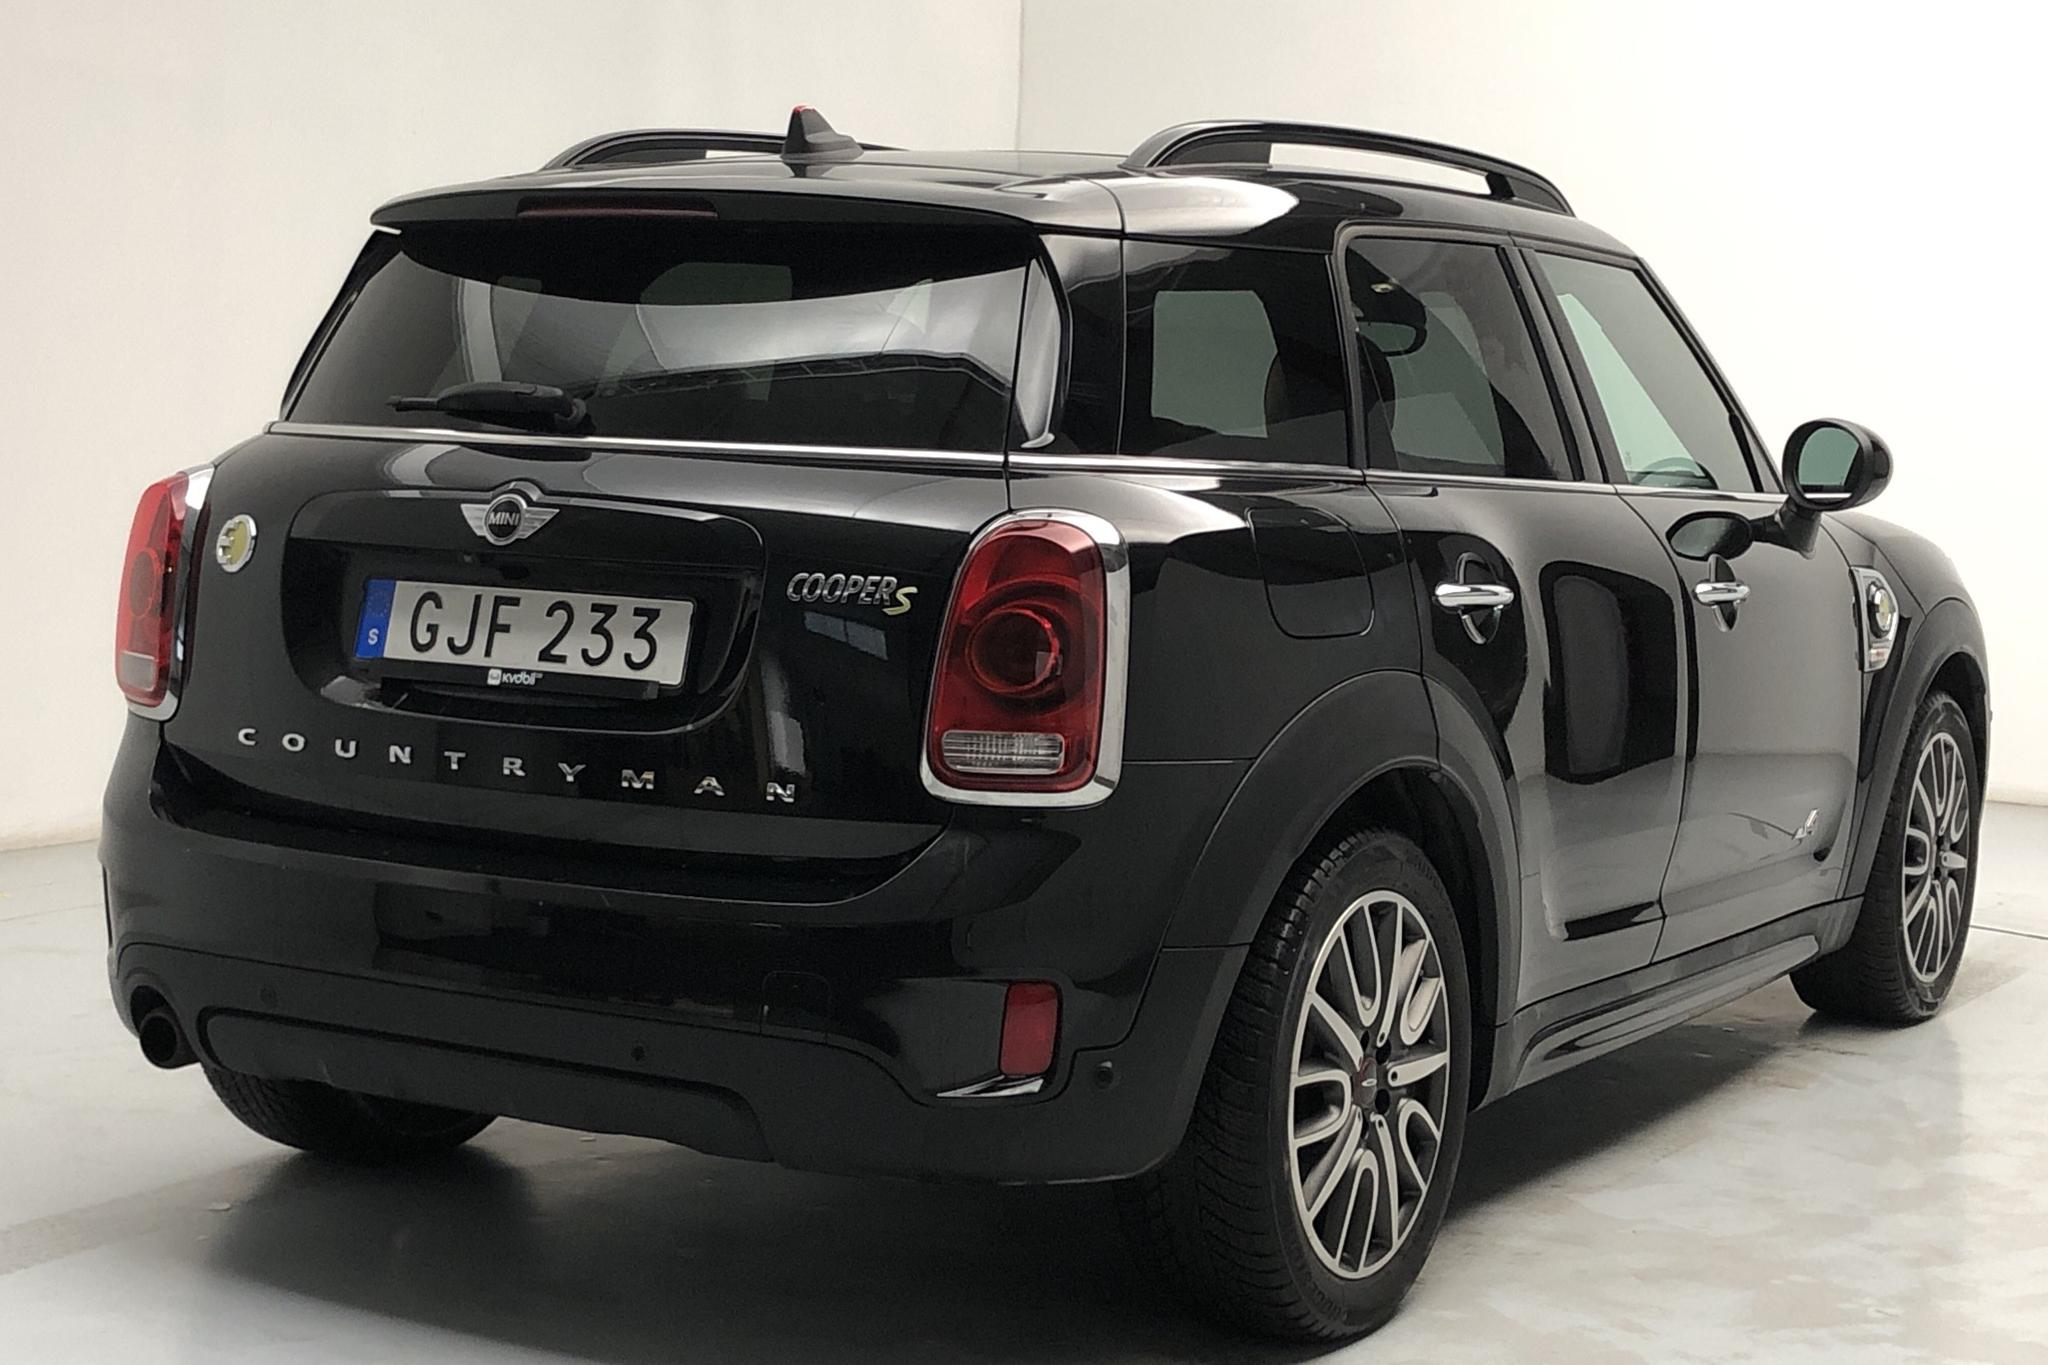 MINI Cooper S E ALL4 Countryman, F60 (224hk) - 43 340 km - Automatic - black - 2018